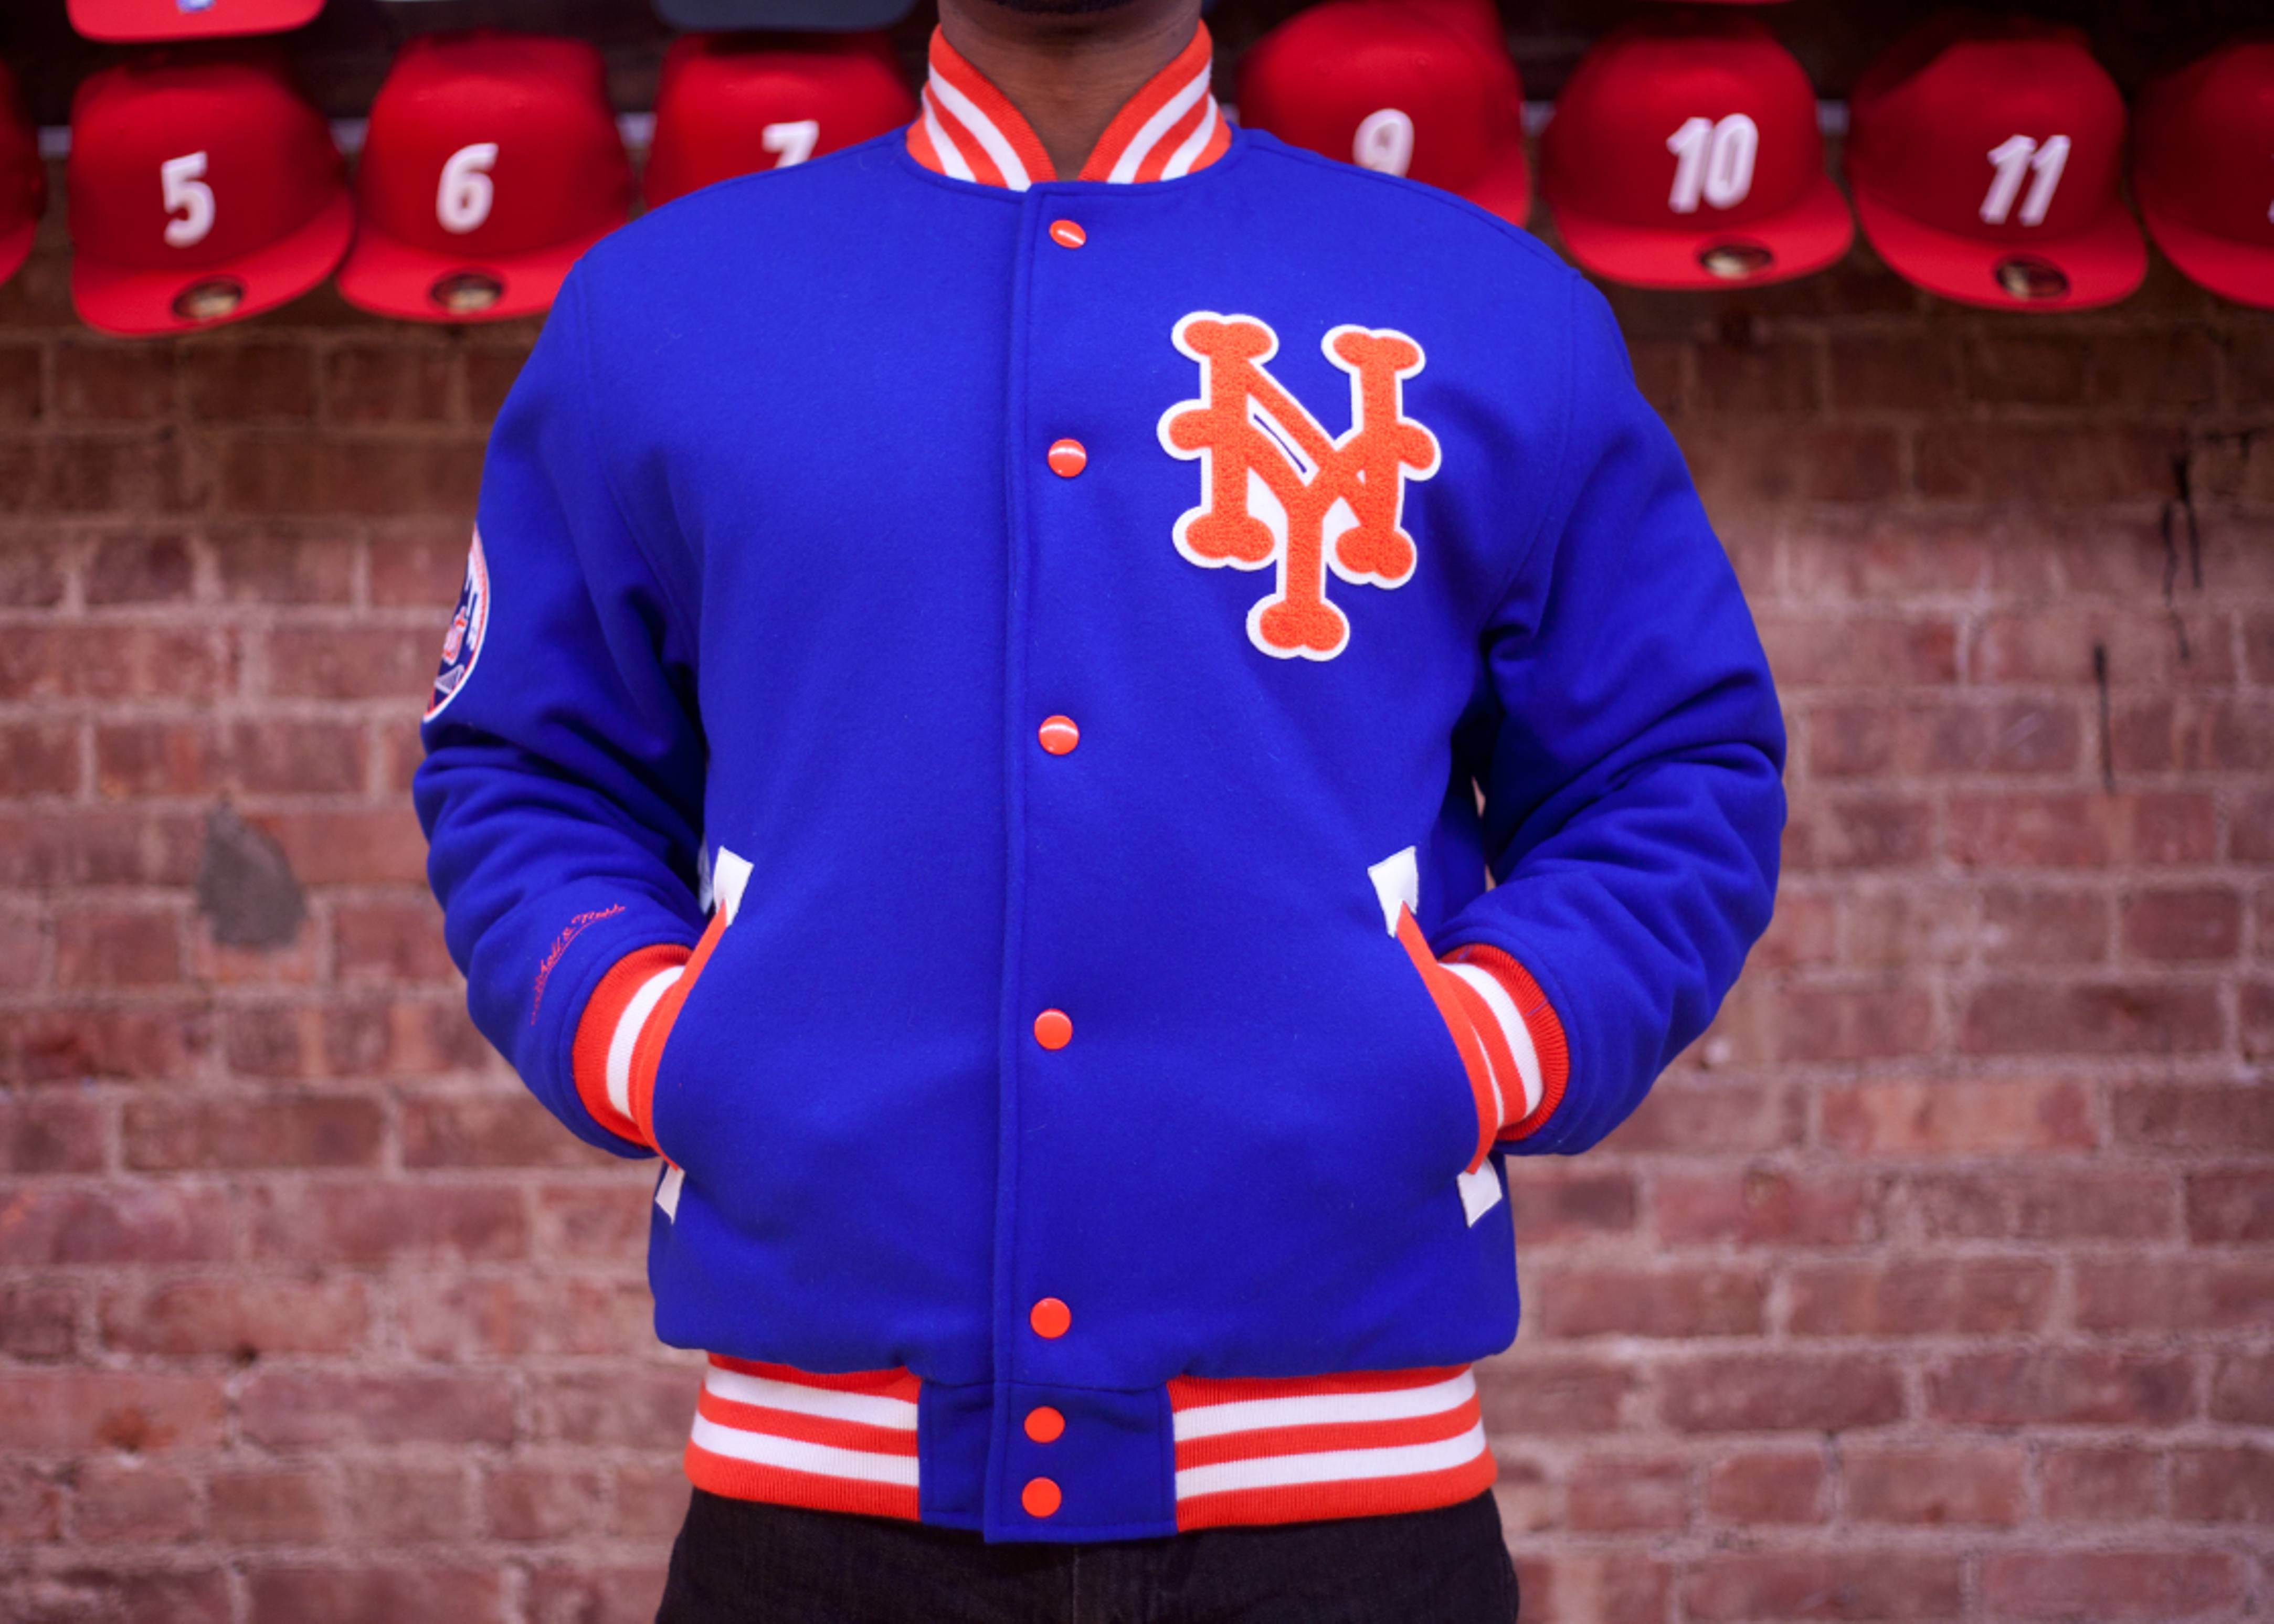 low priced 30524 2ef45 New York Mets Wool Jacket - Mitchell & Ness - 12 - blue ...